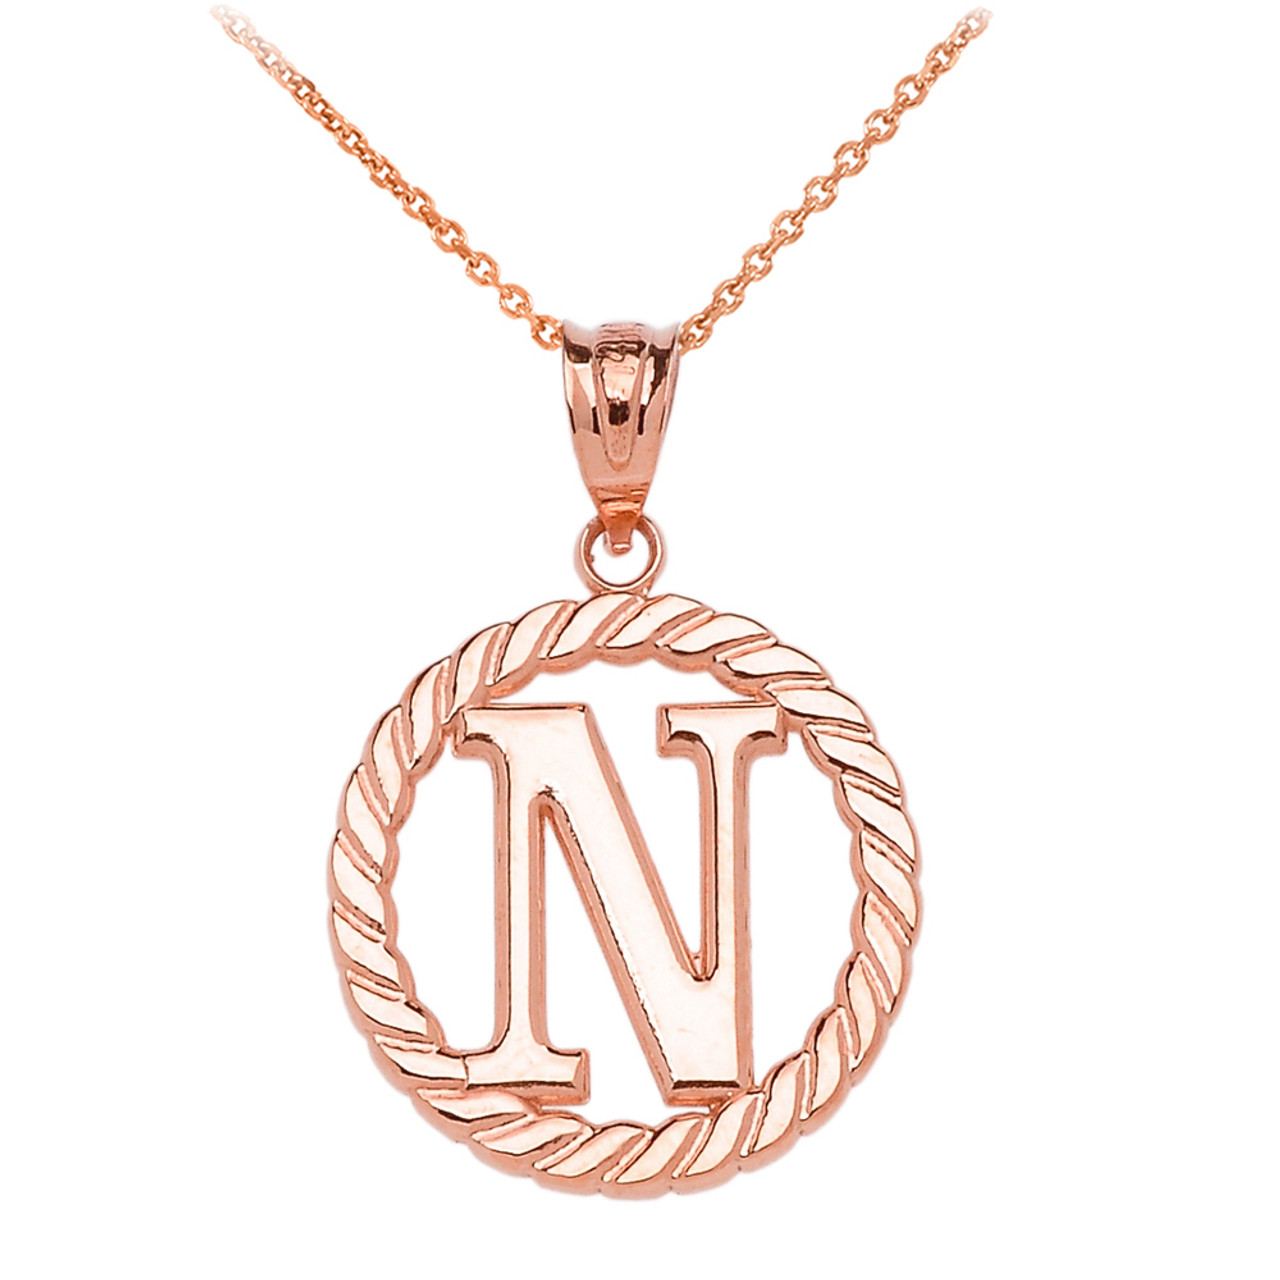 Rose gold n initial in rope circle pendant necklace mozeypictures Gallery